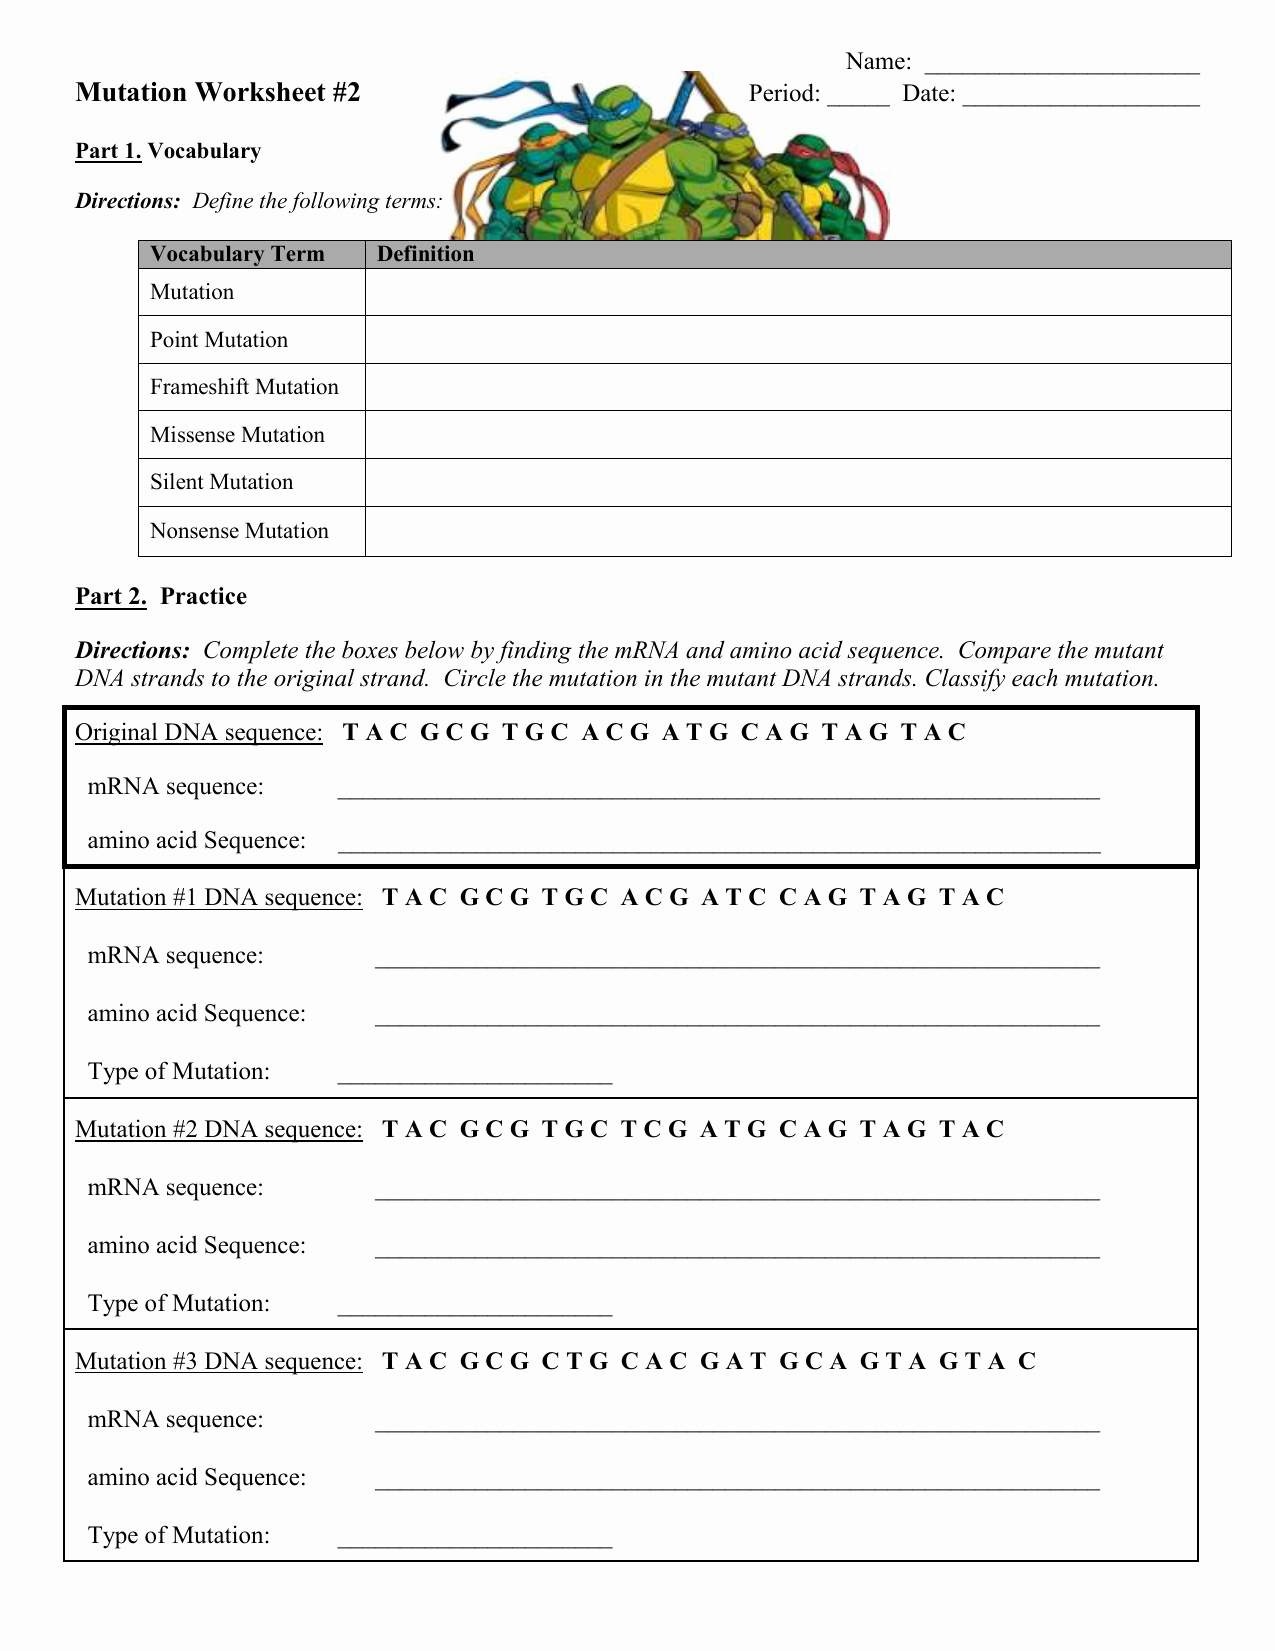 Genetic Mutations Worksheet Answer Key Best Of Genetic Mutation Worksheet Answer Key